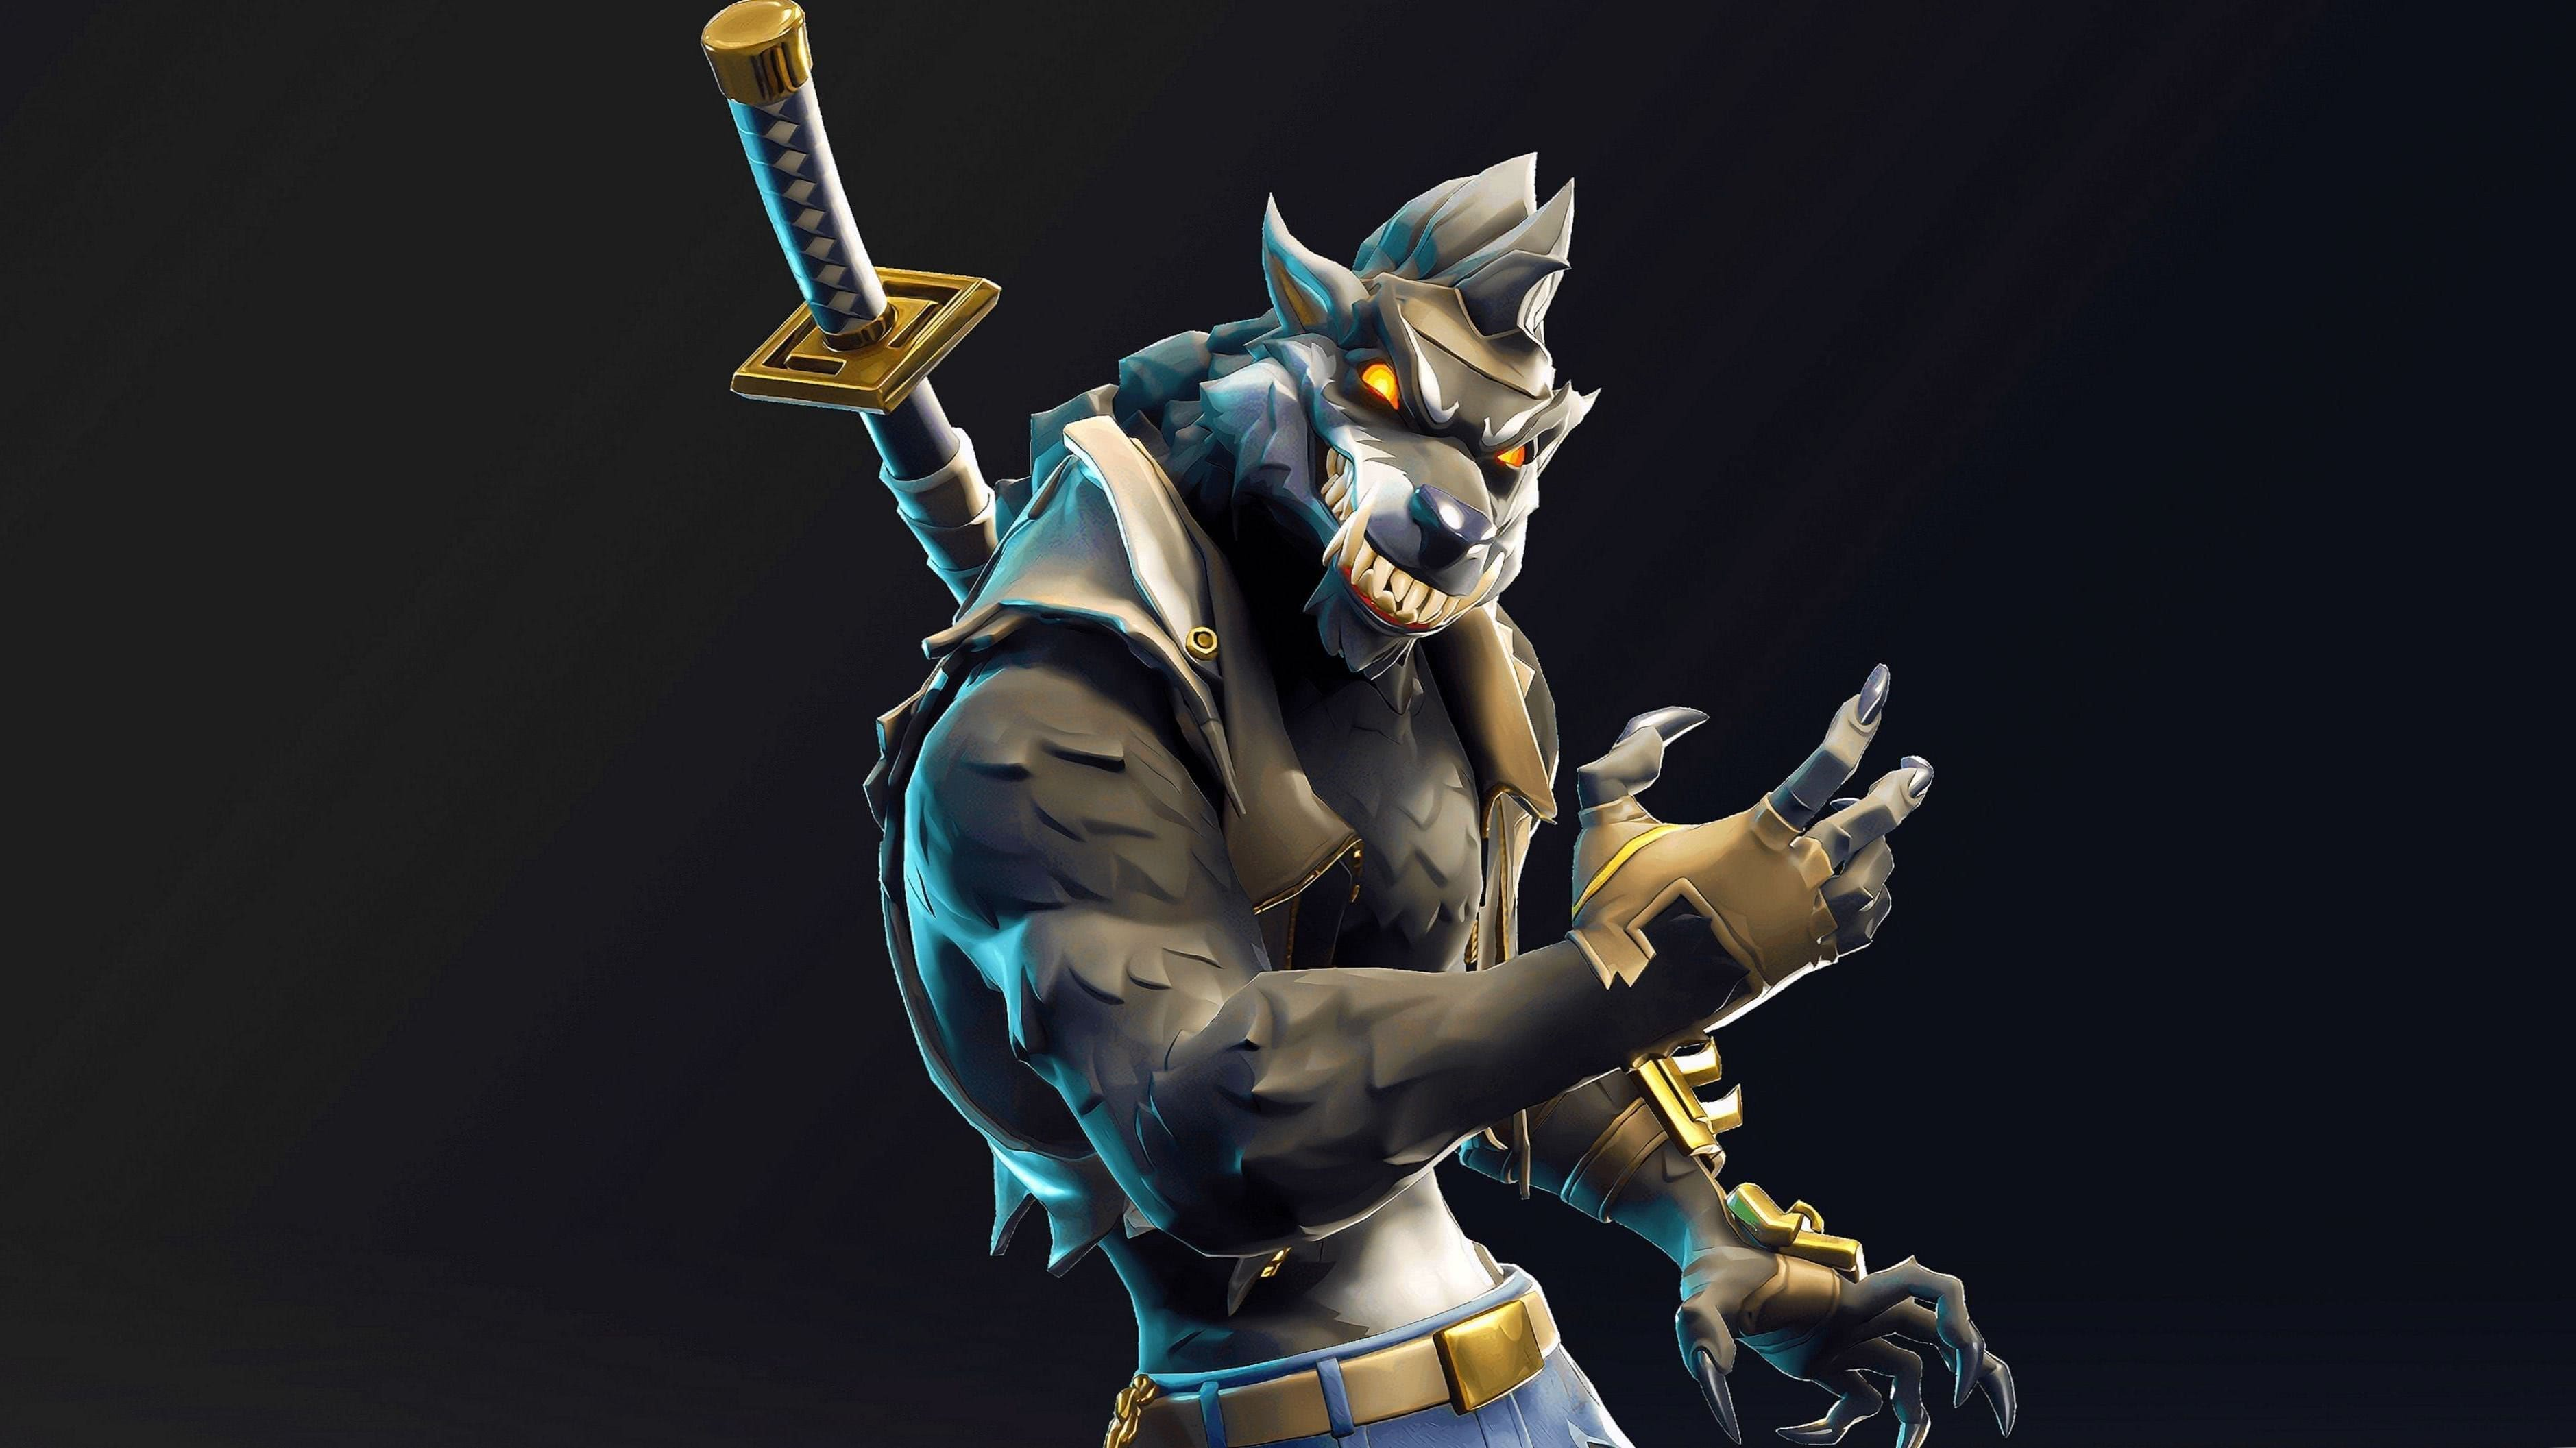 Fortnite Wallpapers Season 6 Wolf